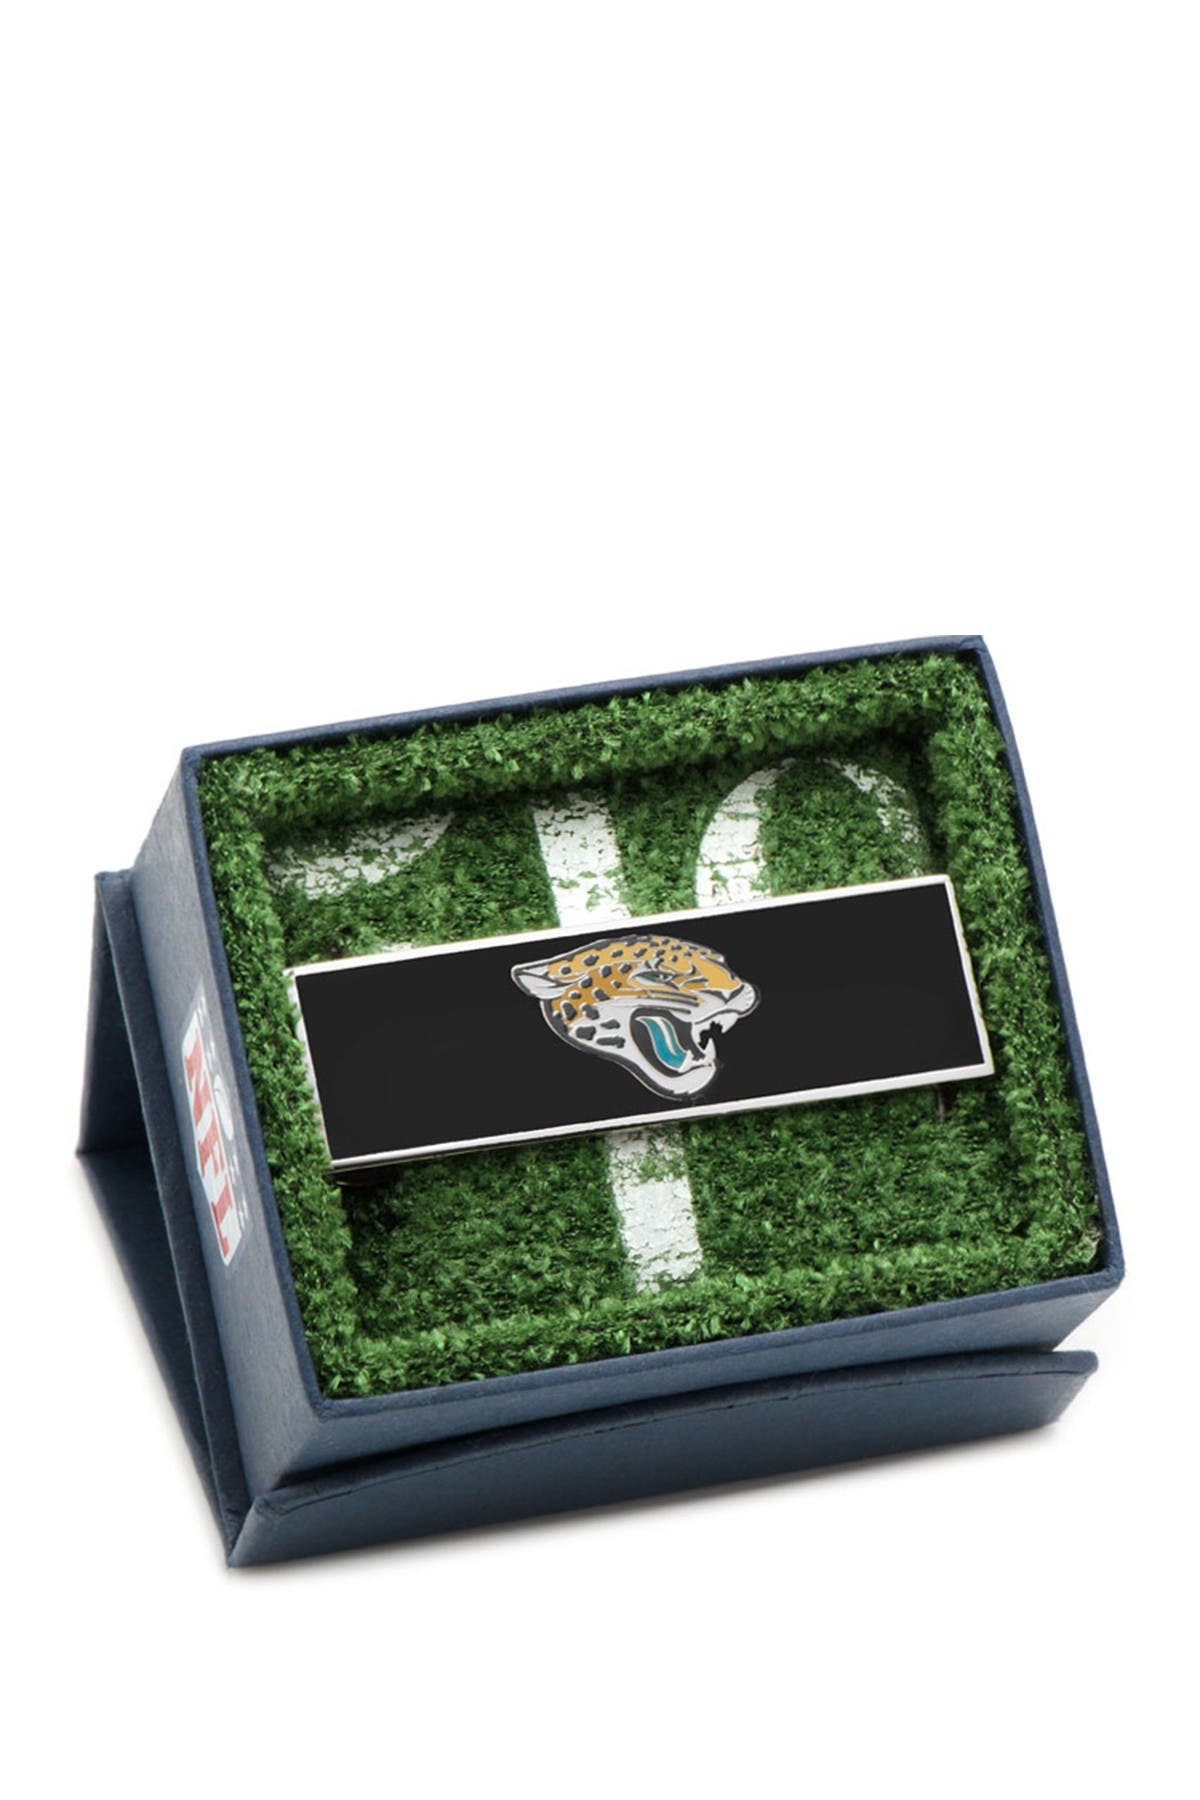 Image of Cufflinks Inc. NFL Jacksonville Jags Money Clip